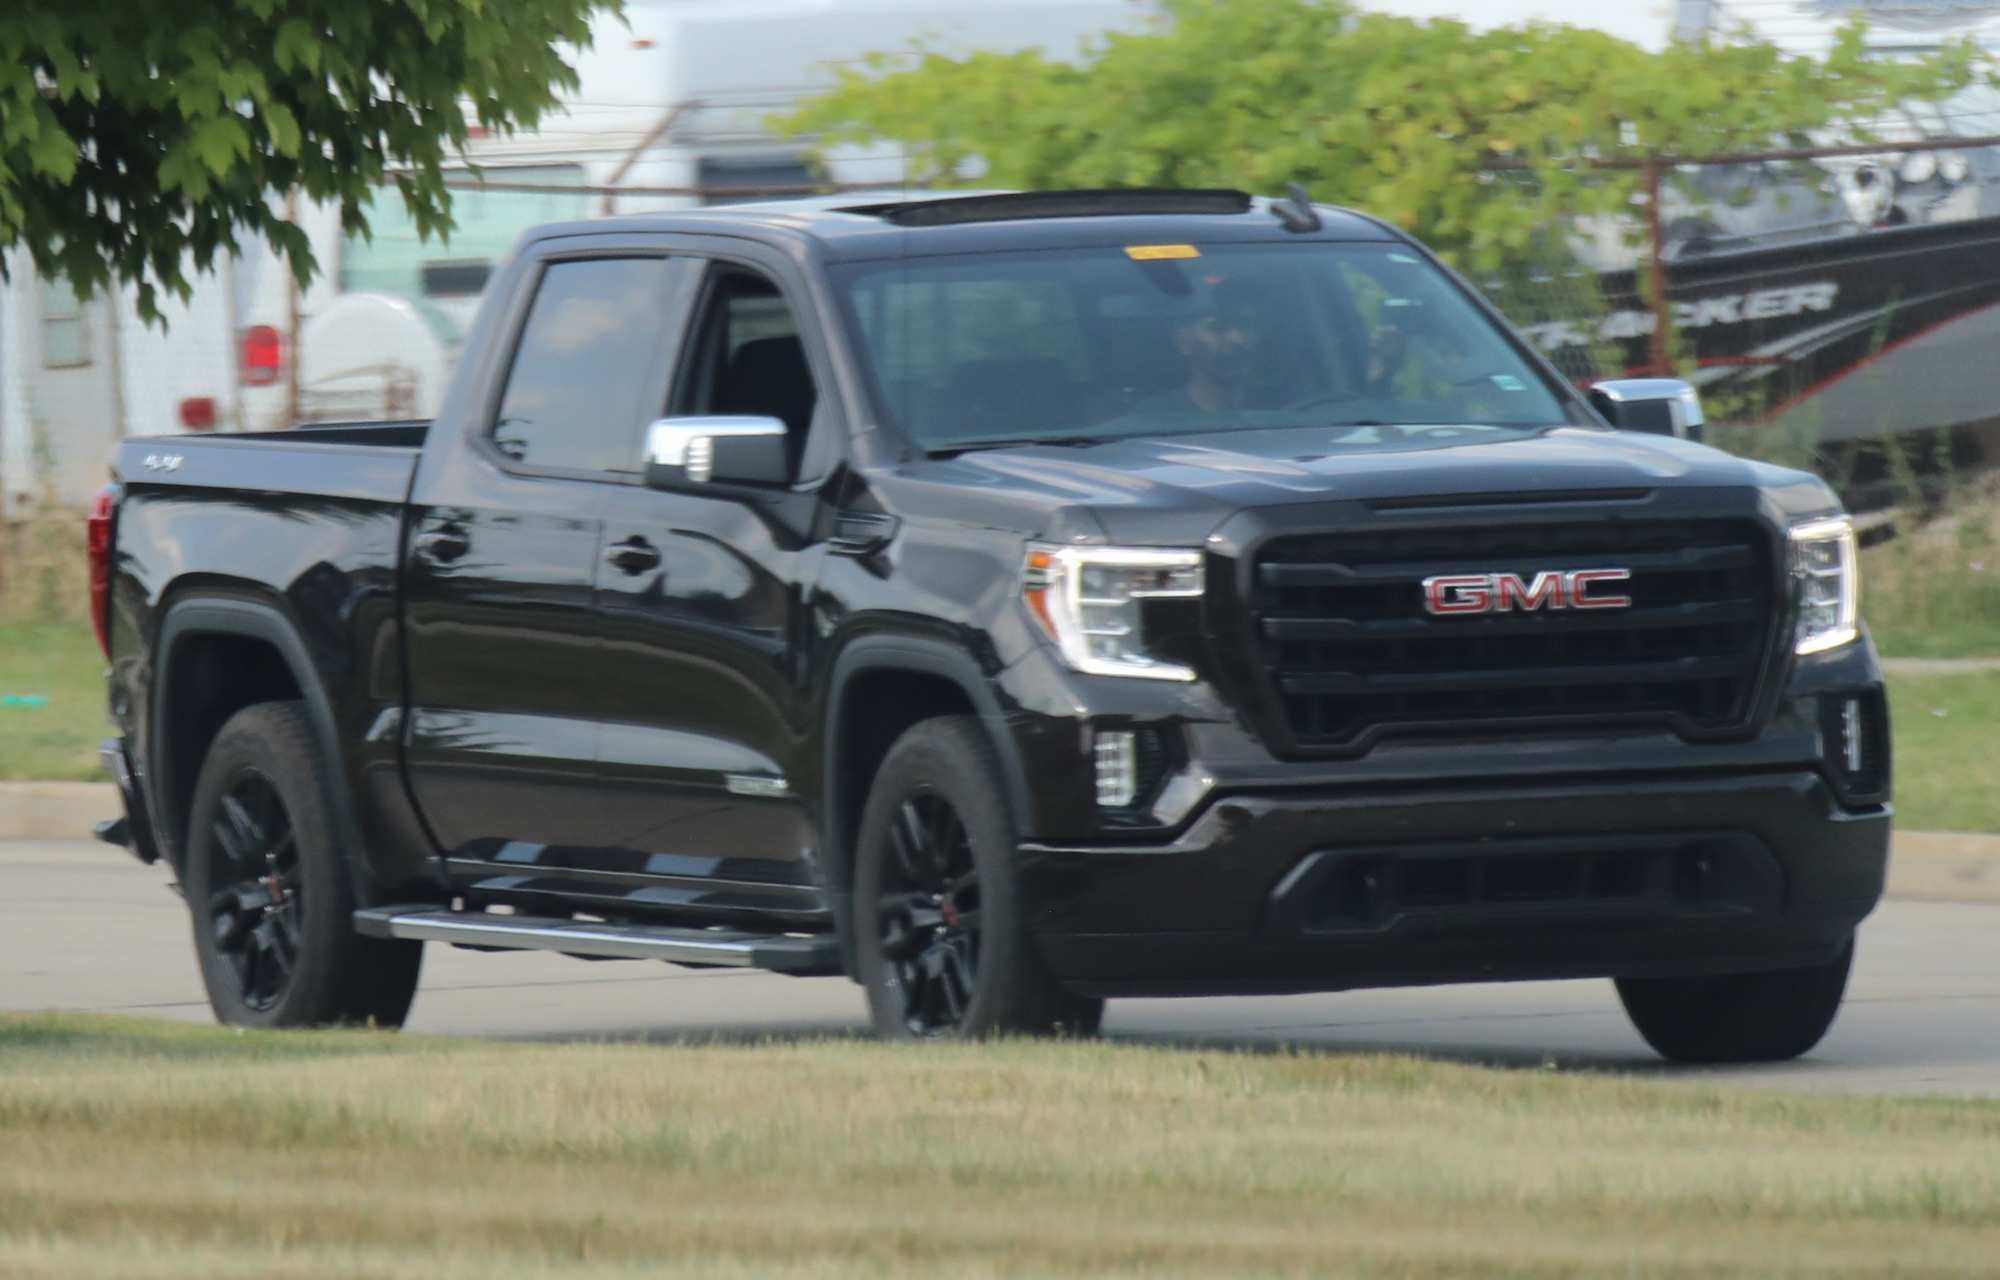 85 New 2019 Gmc Elevation Edition Price And Release Date